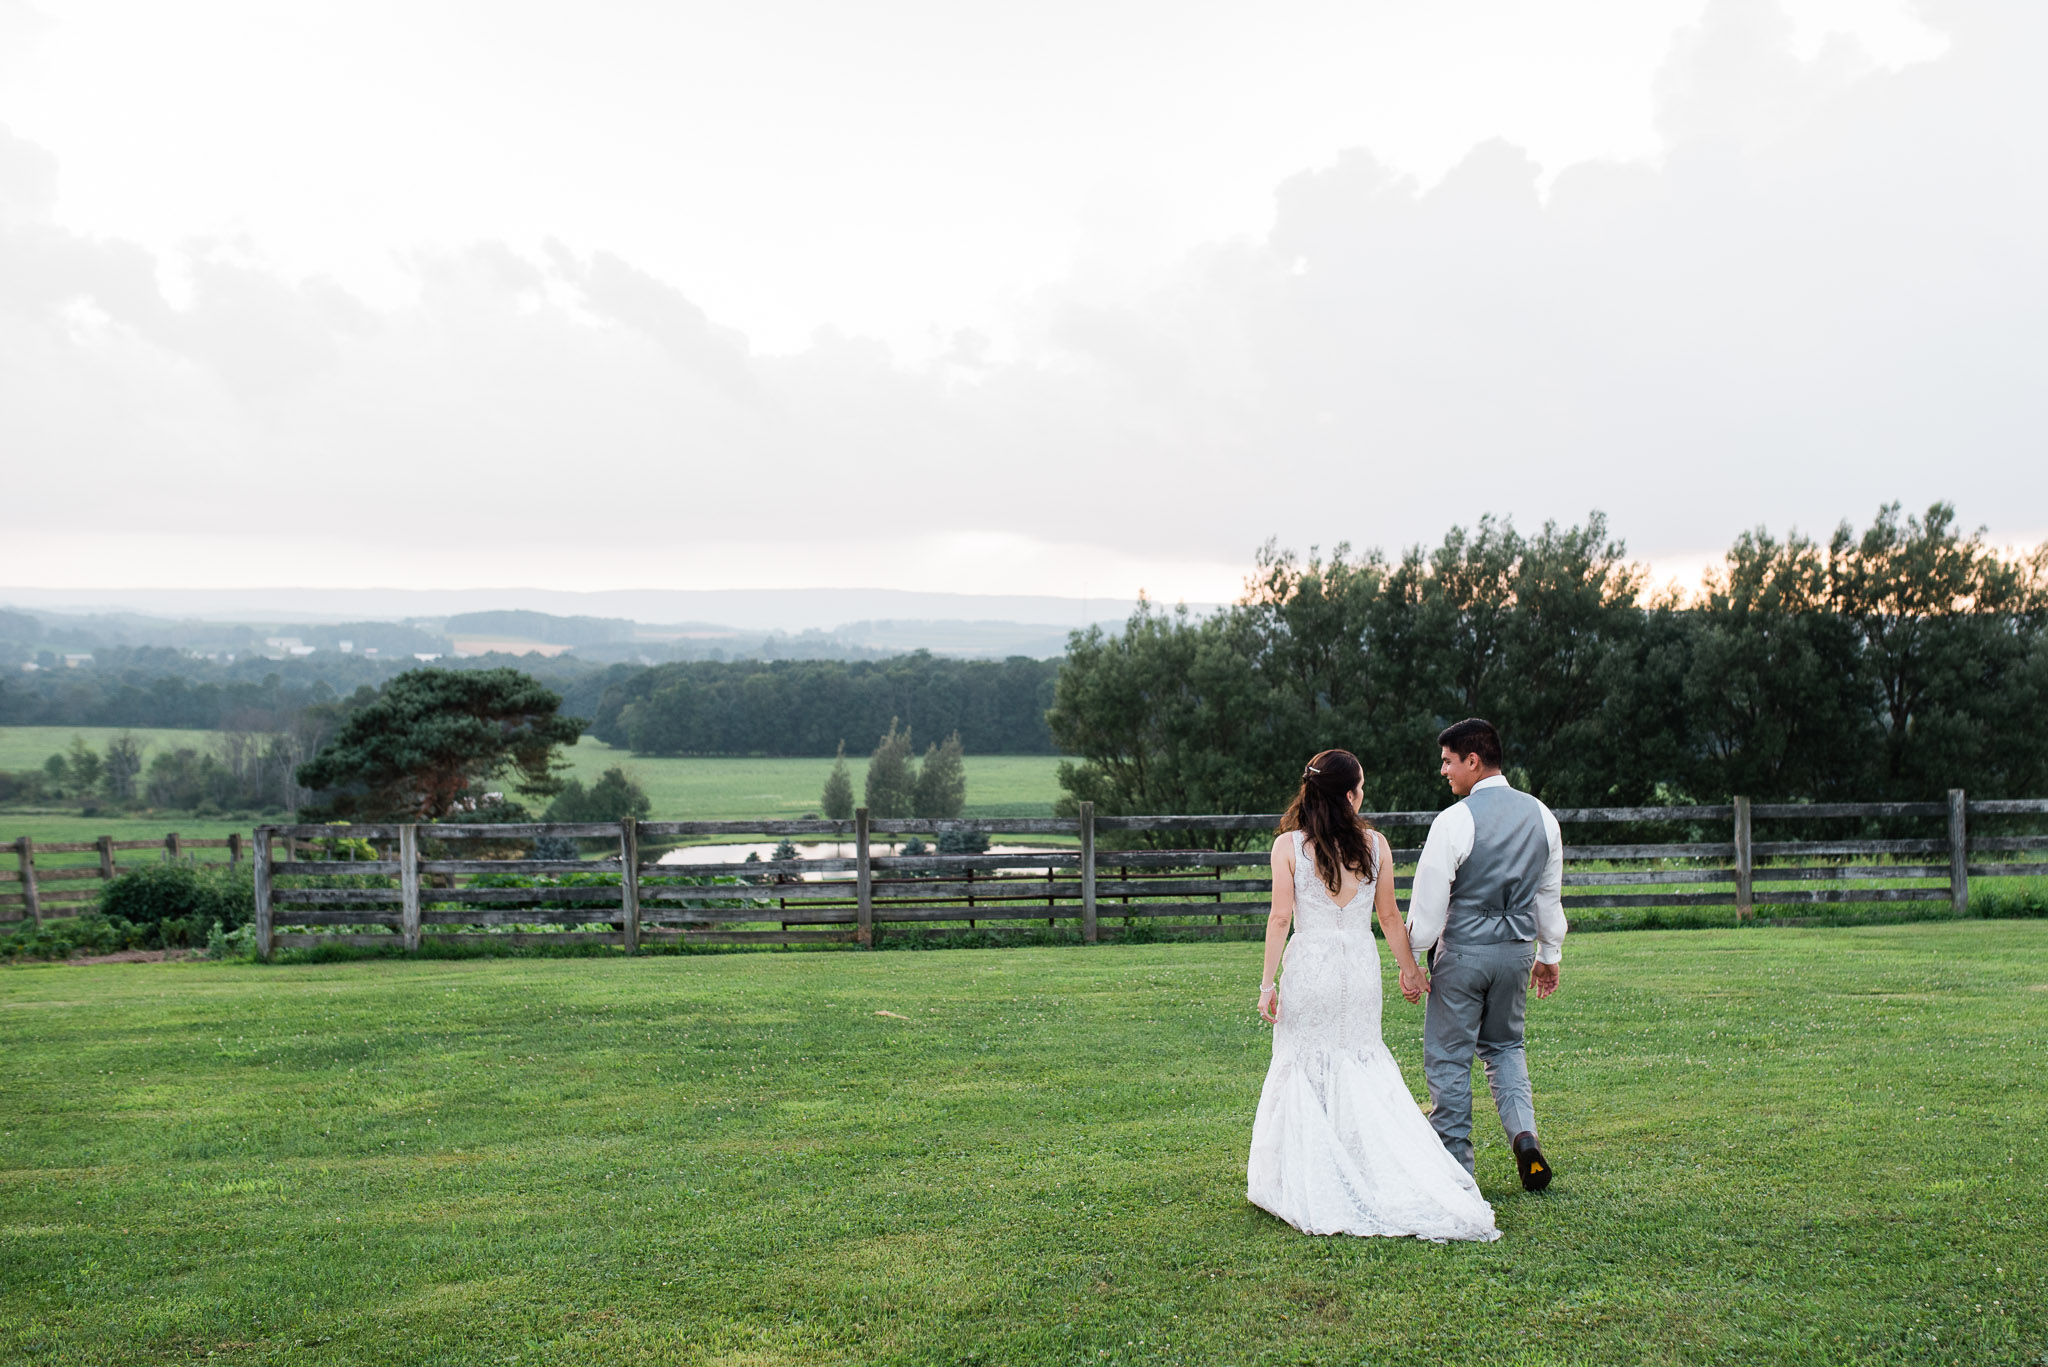 Sunset Wedding Portraits, Pittsburgh Wedding Photographer, The Event Barn at Highland Farms, Somerset PA-4060.jpg